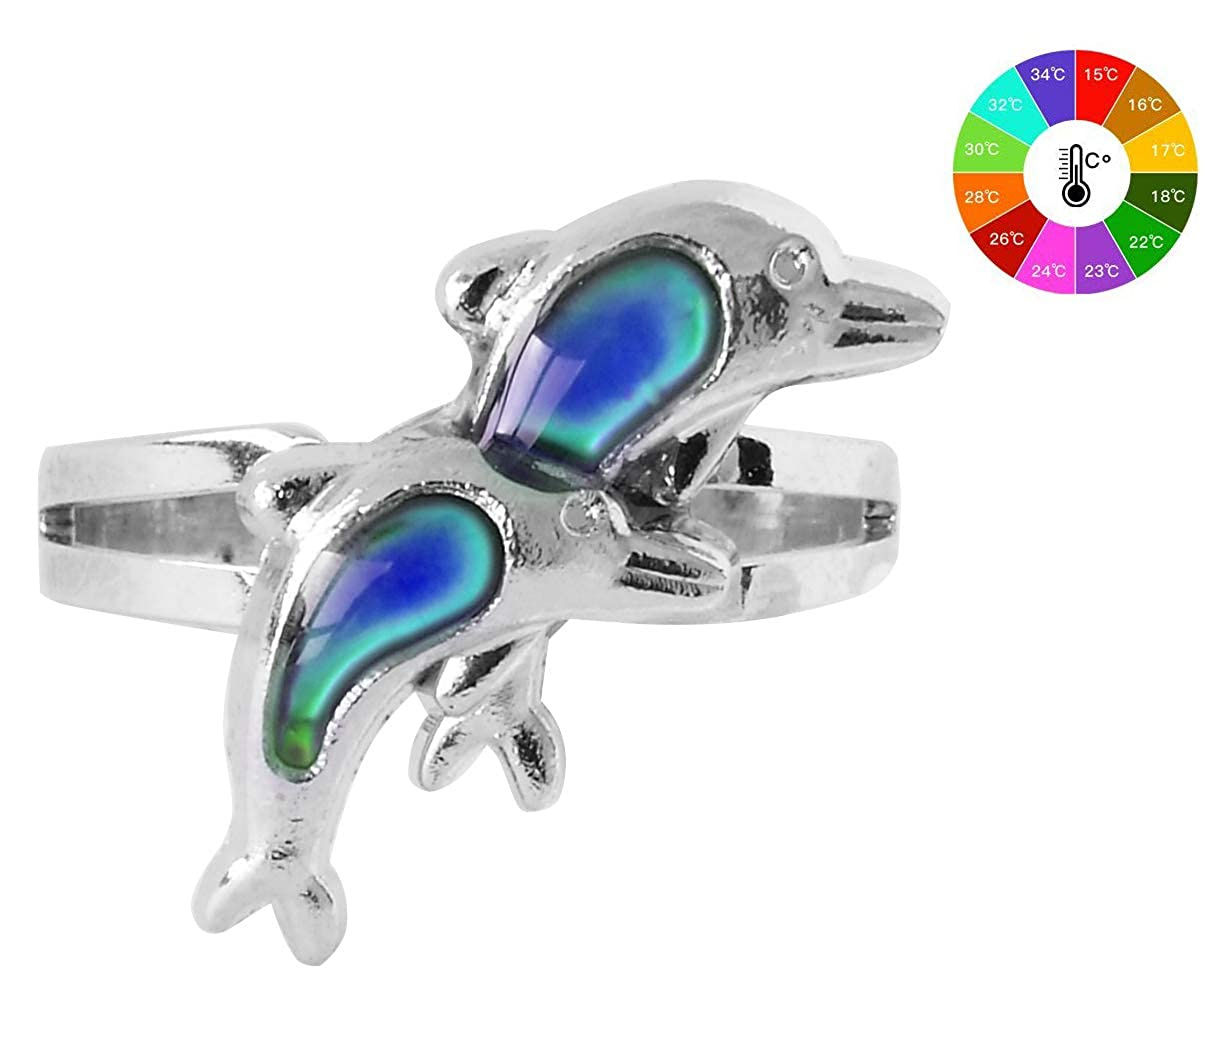 Acchen Mood Ring Unicorn Changing Color Emotion Feeling Finger Rings with Box